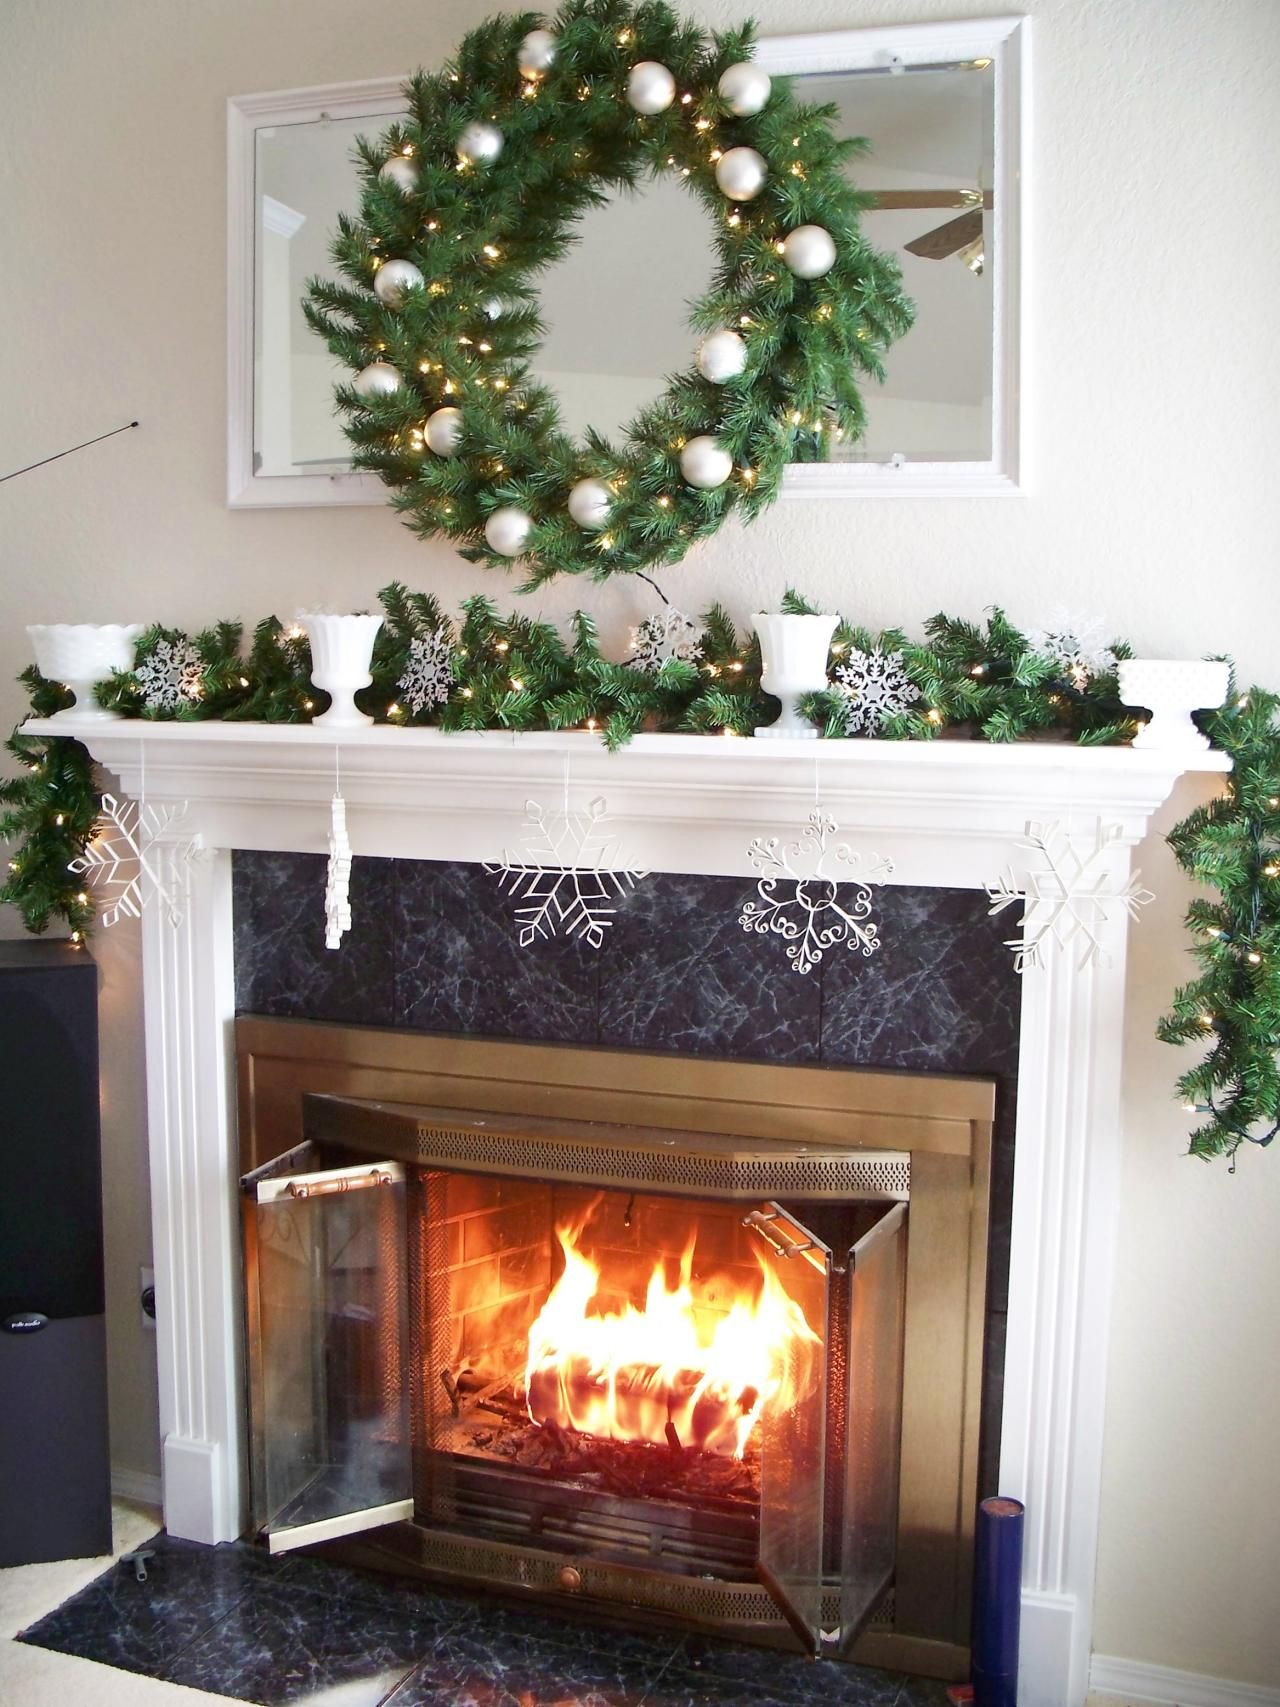 25 indoor christmas decorating ideas fireplace mantel